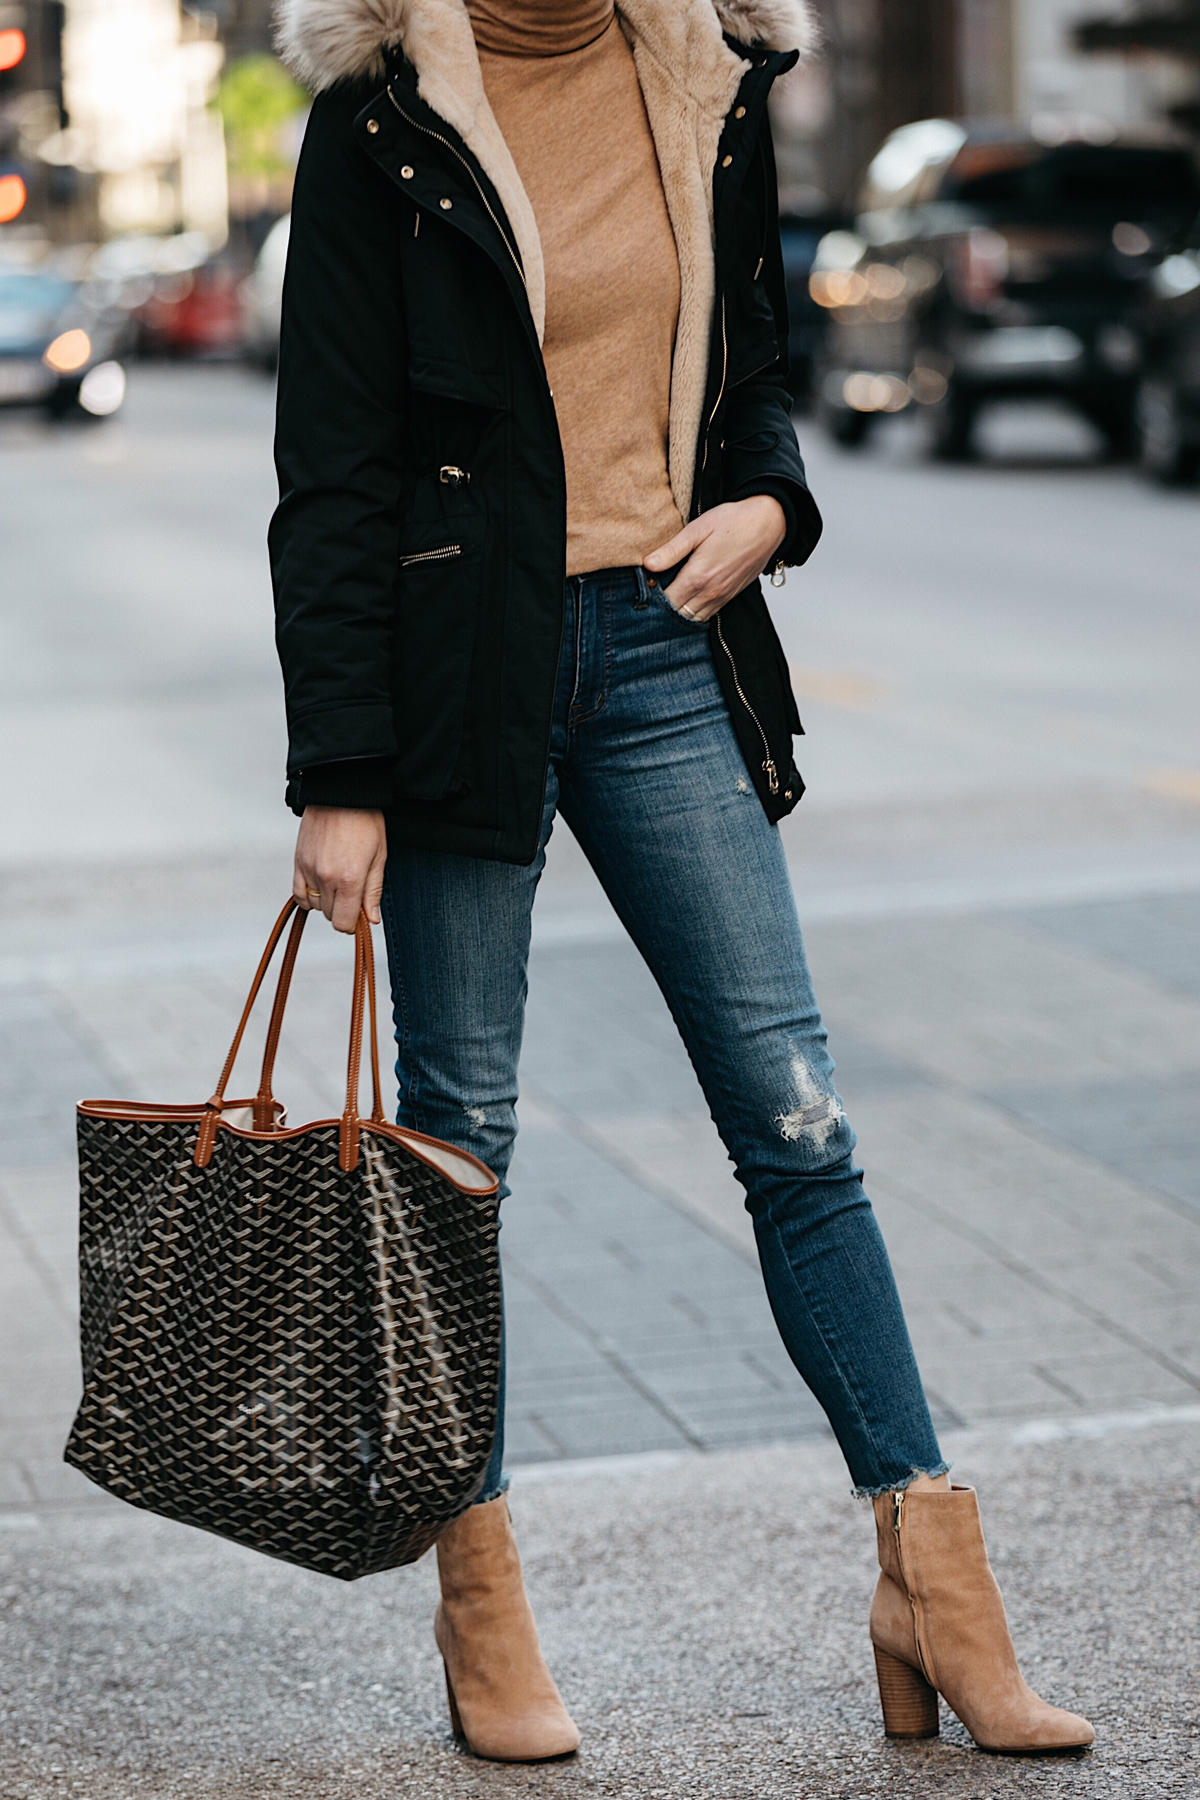 Woman Wearing Zara Faux Fur Trimmed Black Parka Jacket Goyard Tote Denim Jeans Tan Turtleneck Sam Edelman Corra Booties Fashion Jackson Dallas Blogger Fashion Blogger Street Style